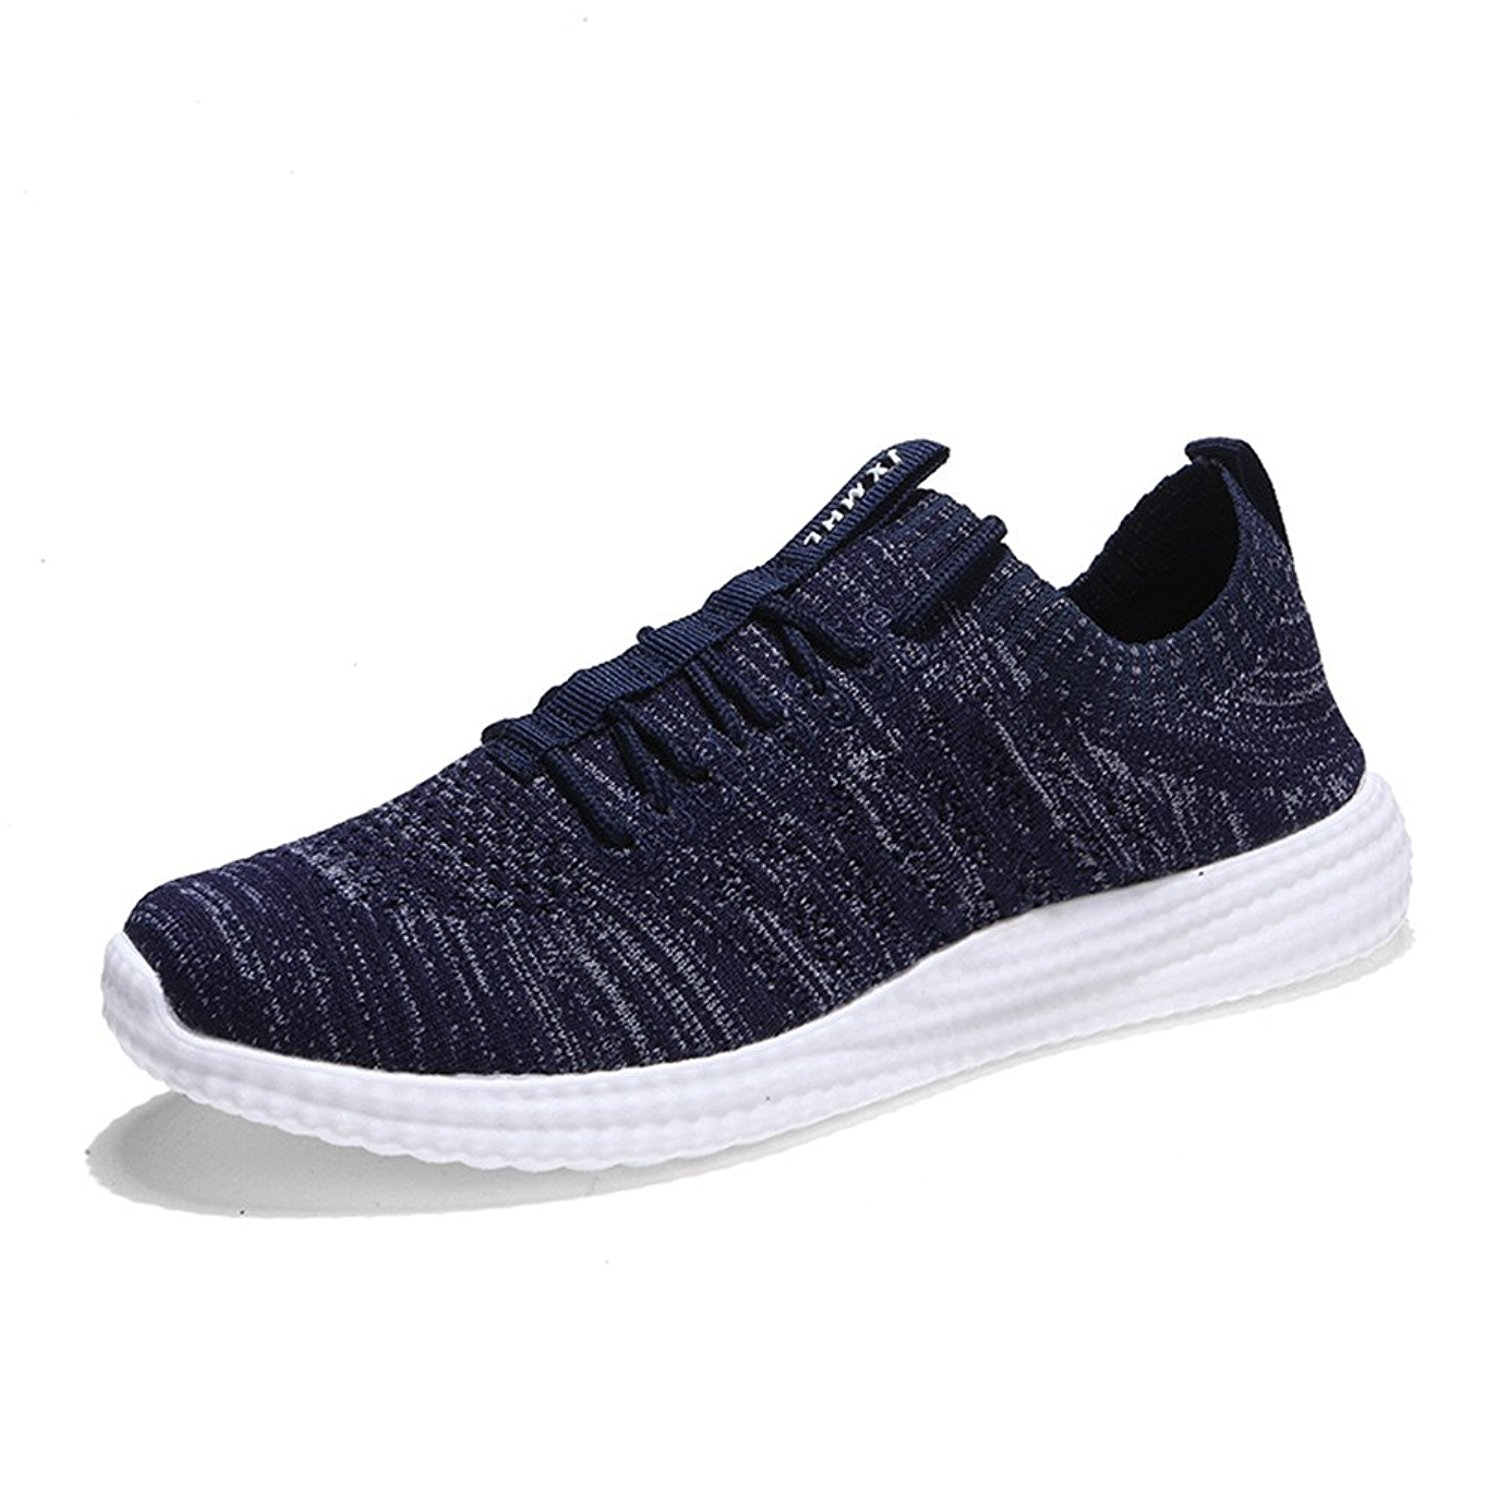 LUWELL Running Shoes Breathable Fashion Sneakers Lightweight Athletic Walking Footwear for Men